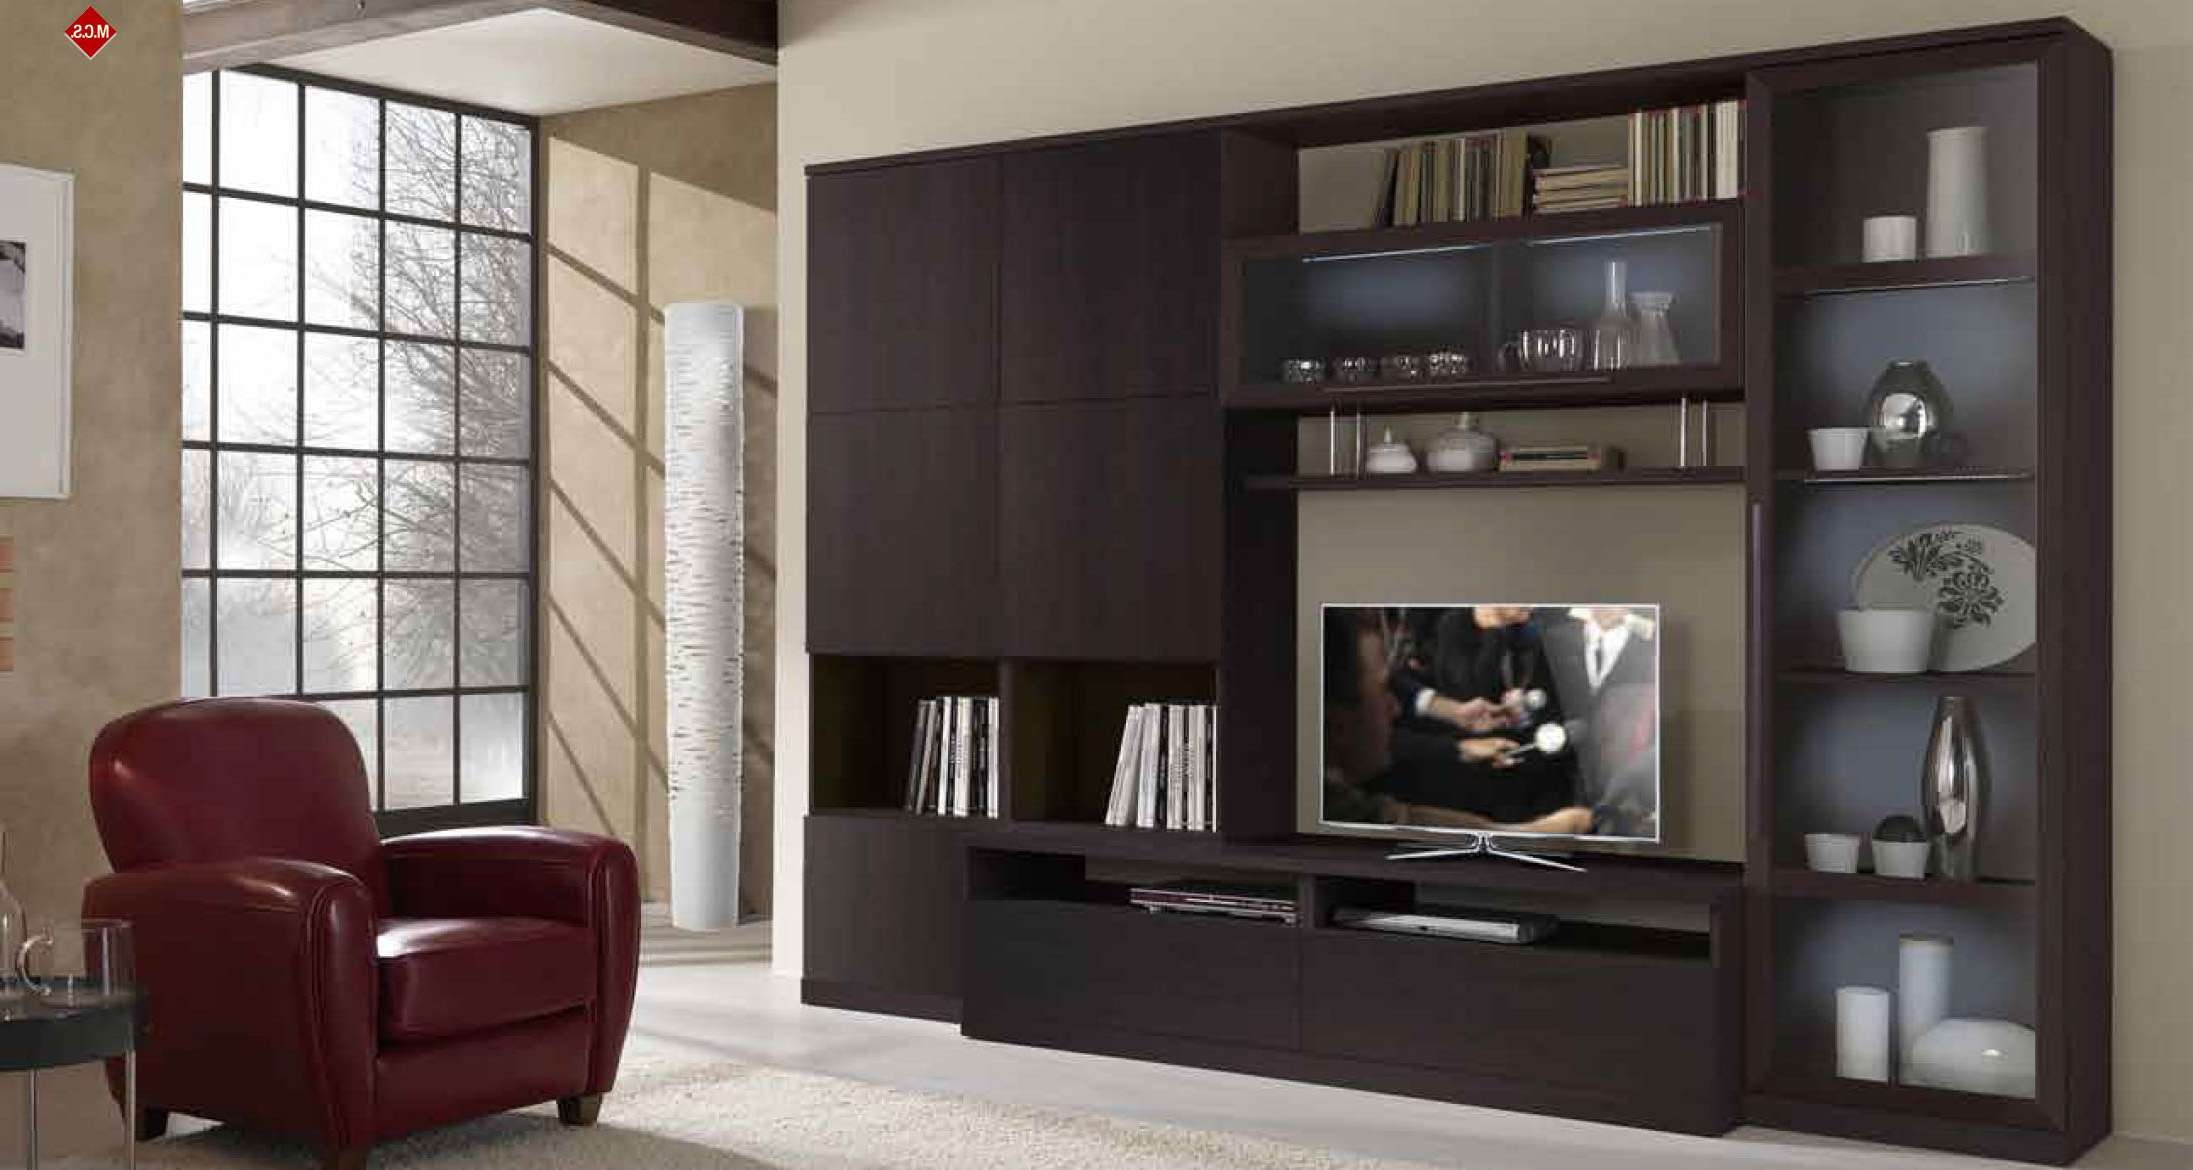 Wall Display Units & Tv Cabinets – Edgarpoe With Regard To Wall Display Units And Tv Cabinets (View 11 of 20)